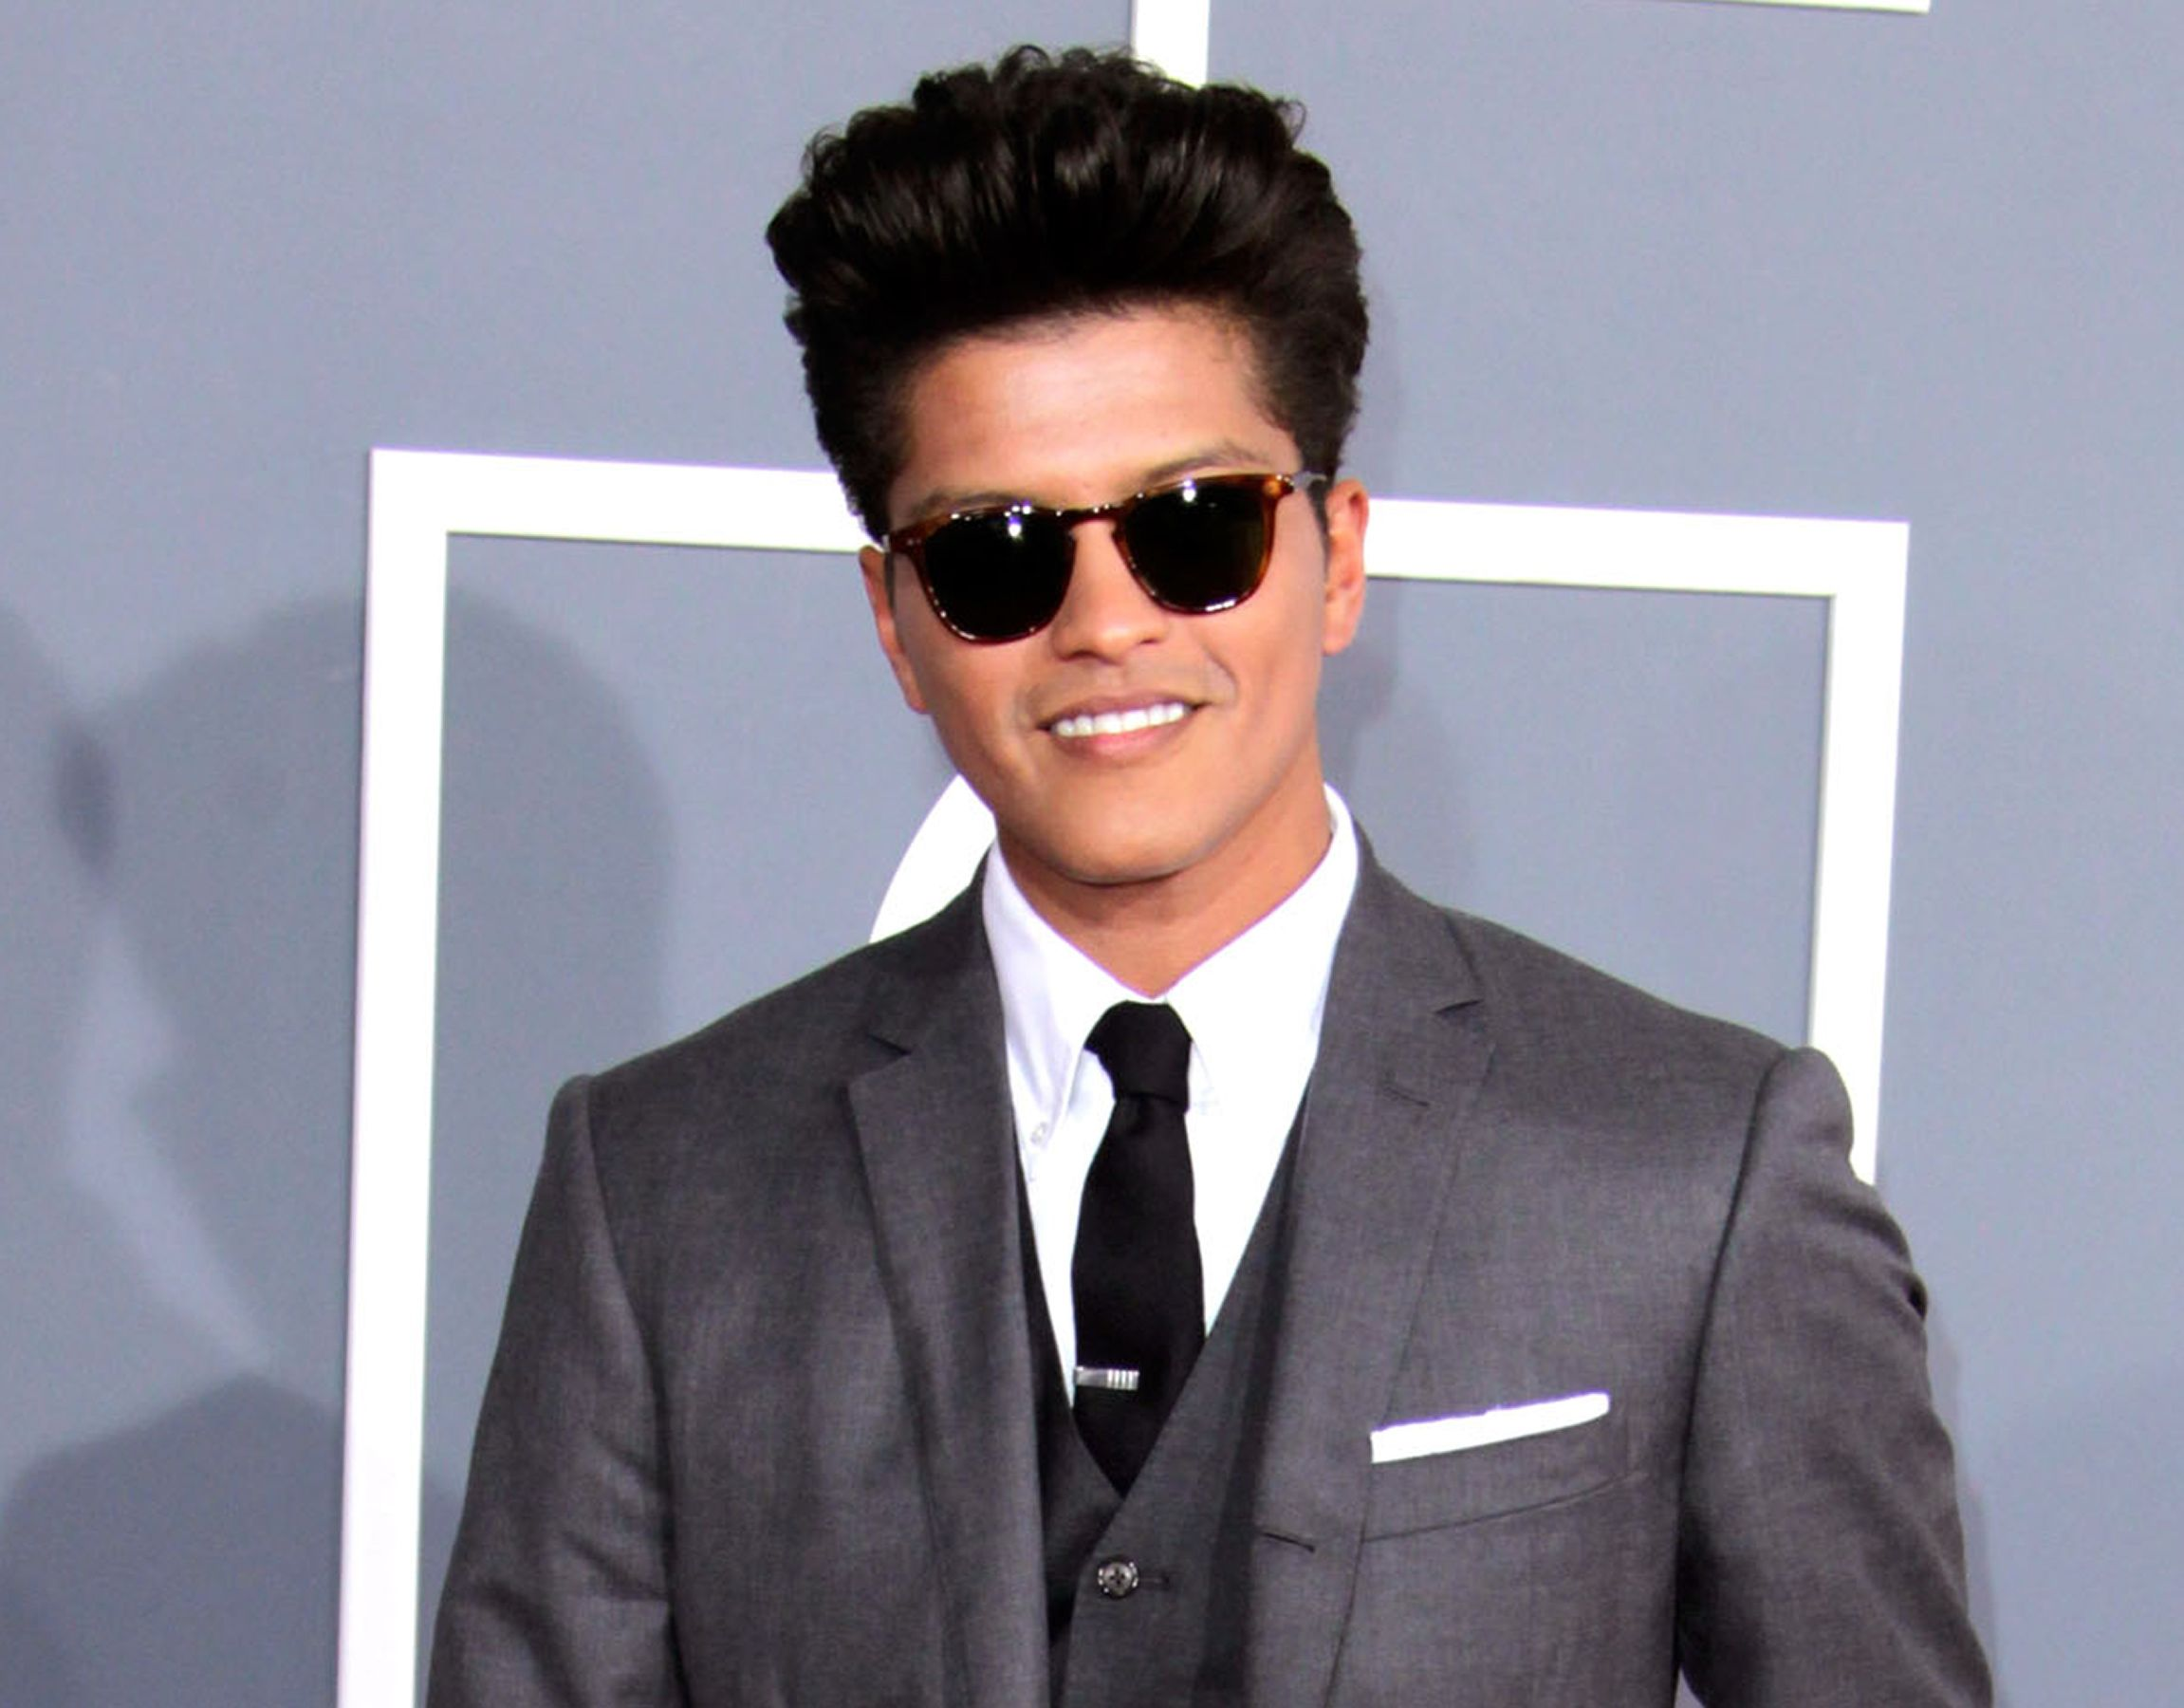 Bruno Mars 2017 Wallpapers